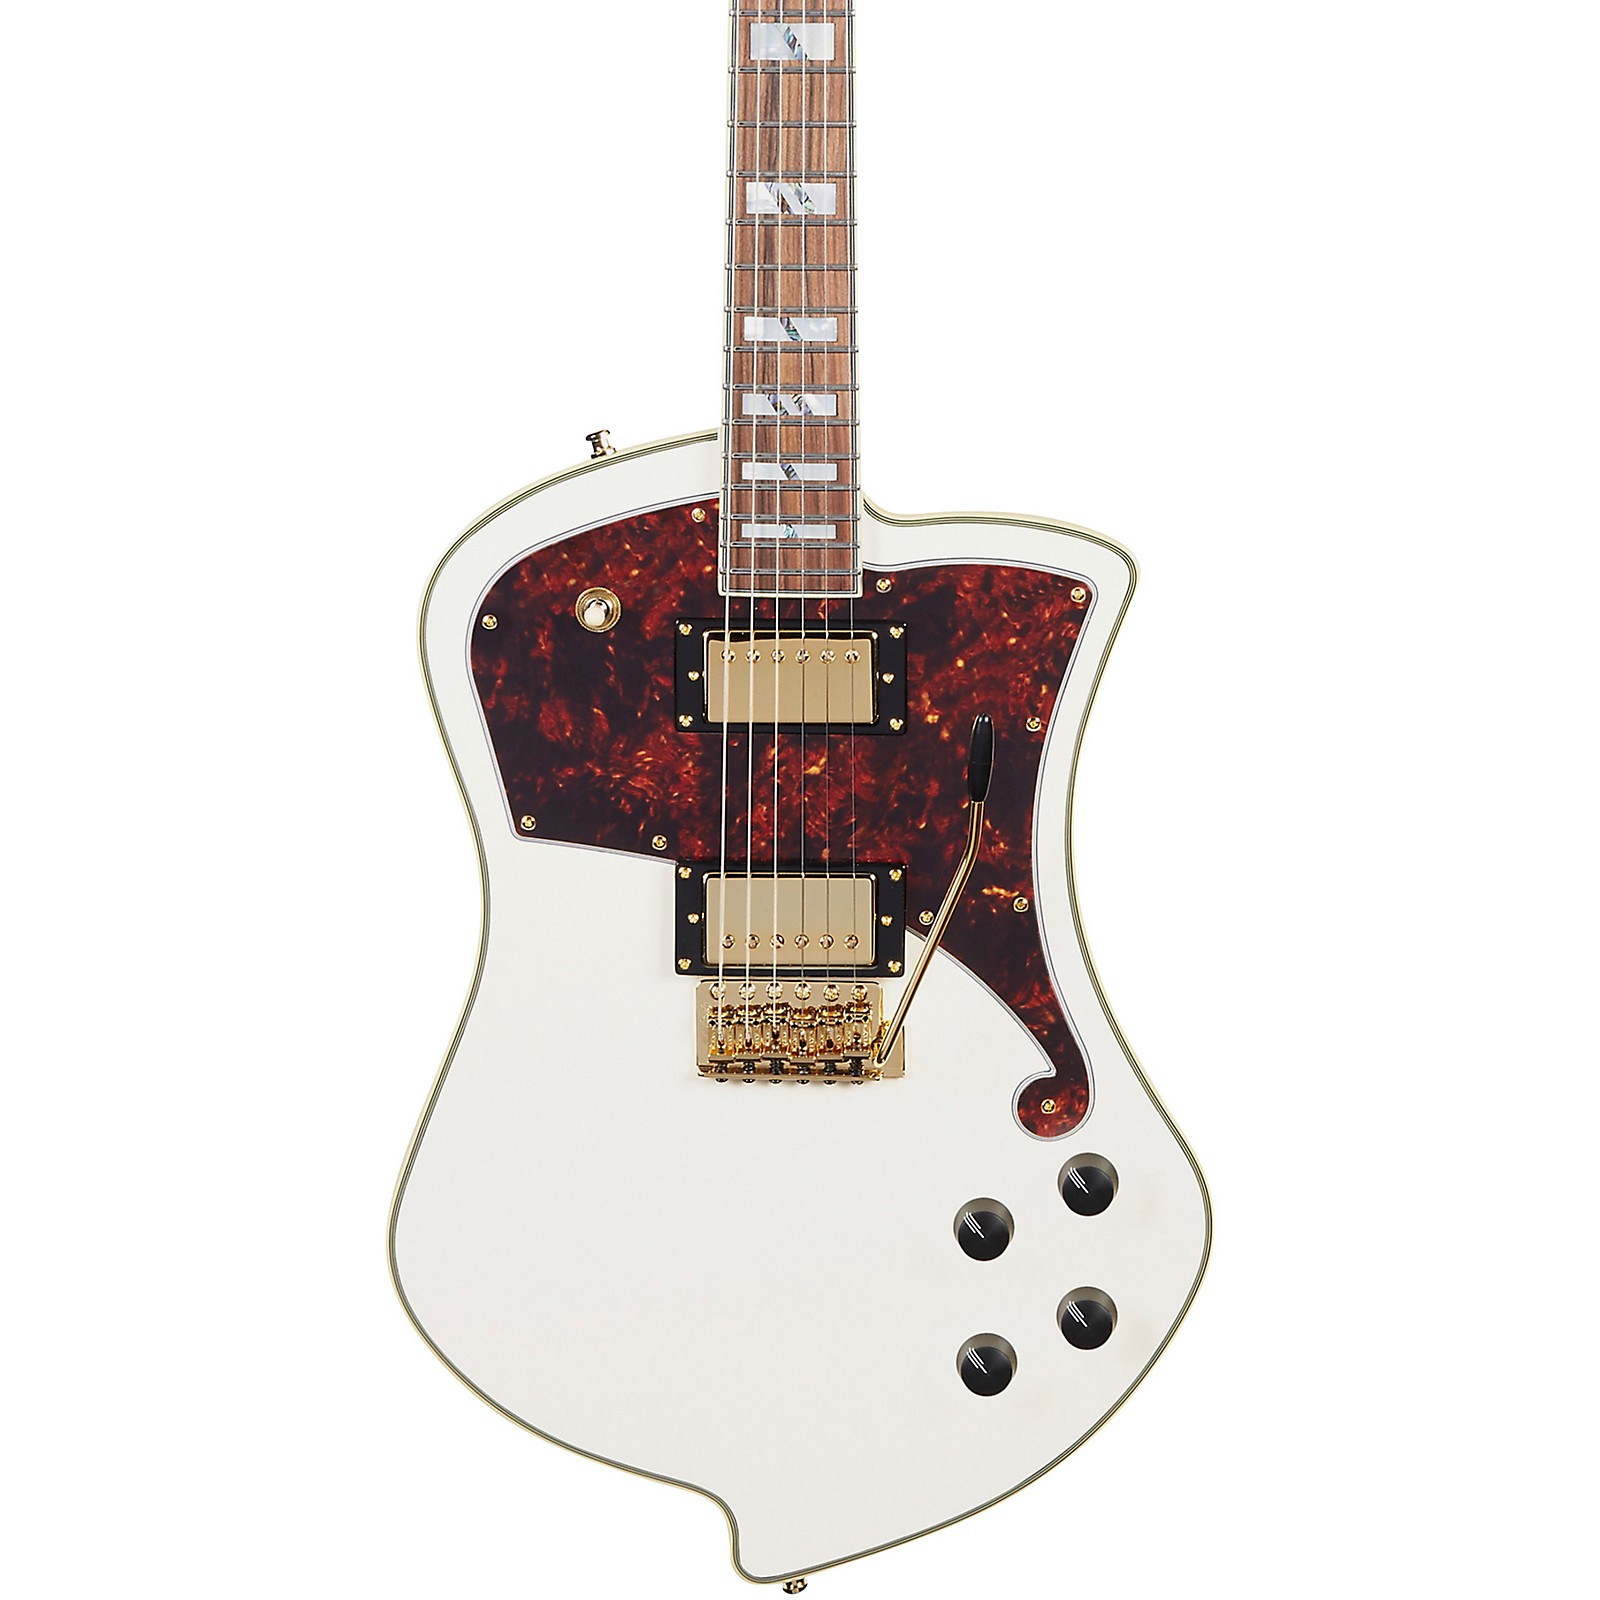 D'Angelico Deluxe Series Ludlow Electric Guitar with Tremolo Tailpiece